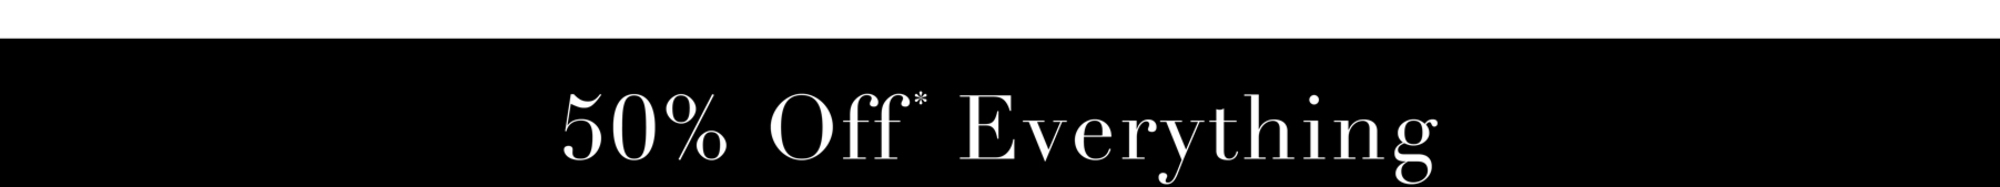 50% Off* Everything